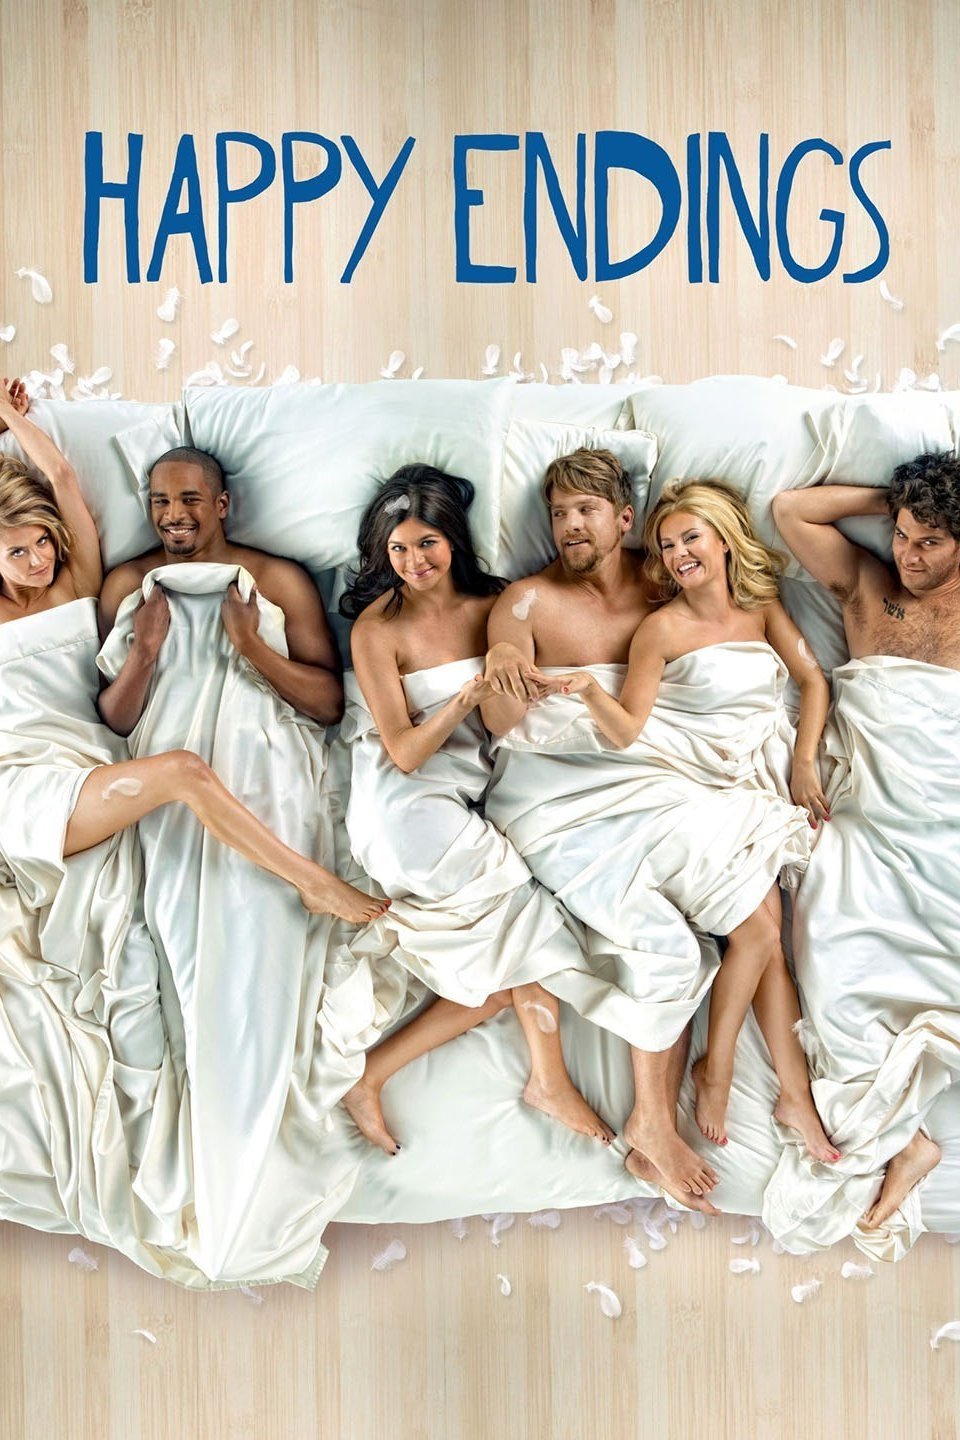 Happy Endings, 2011